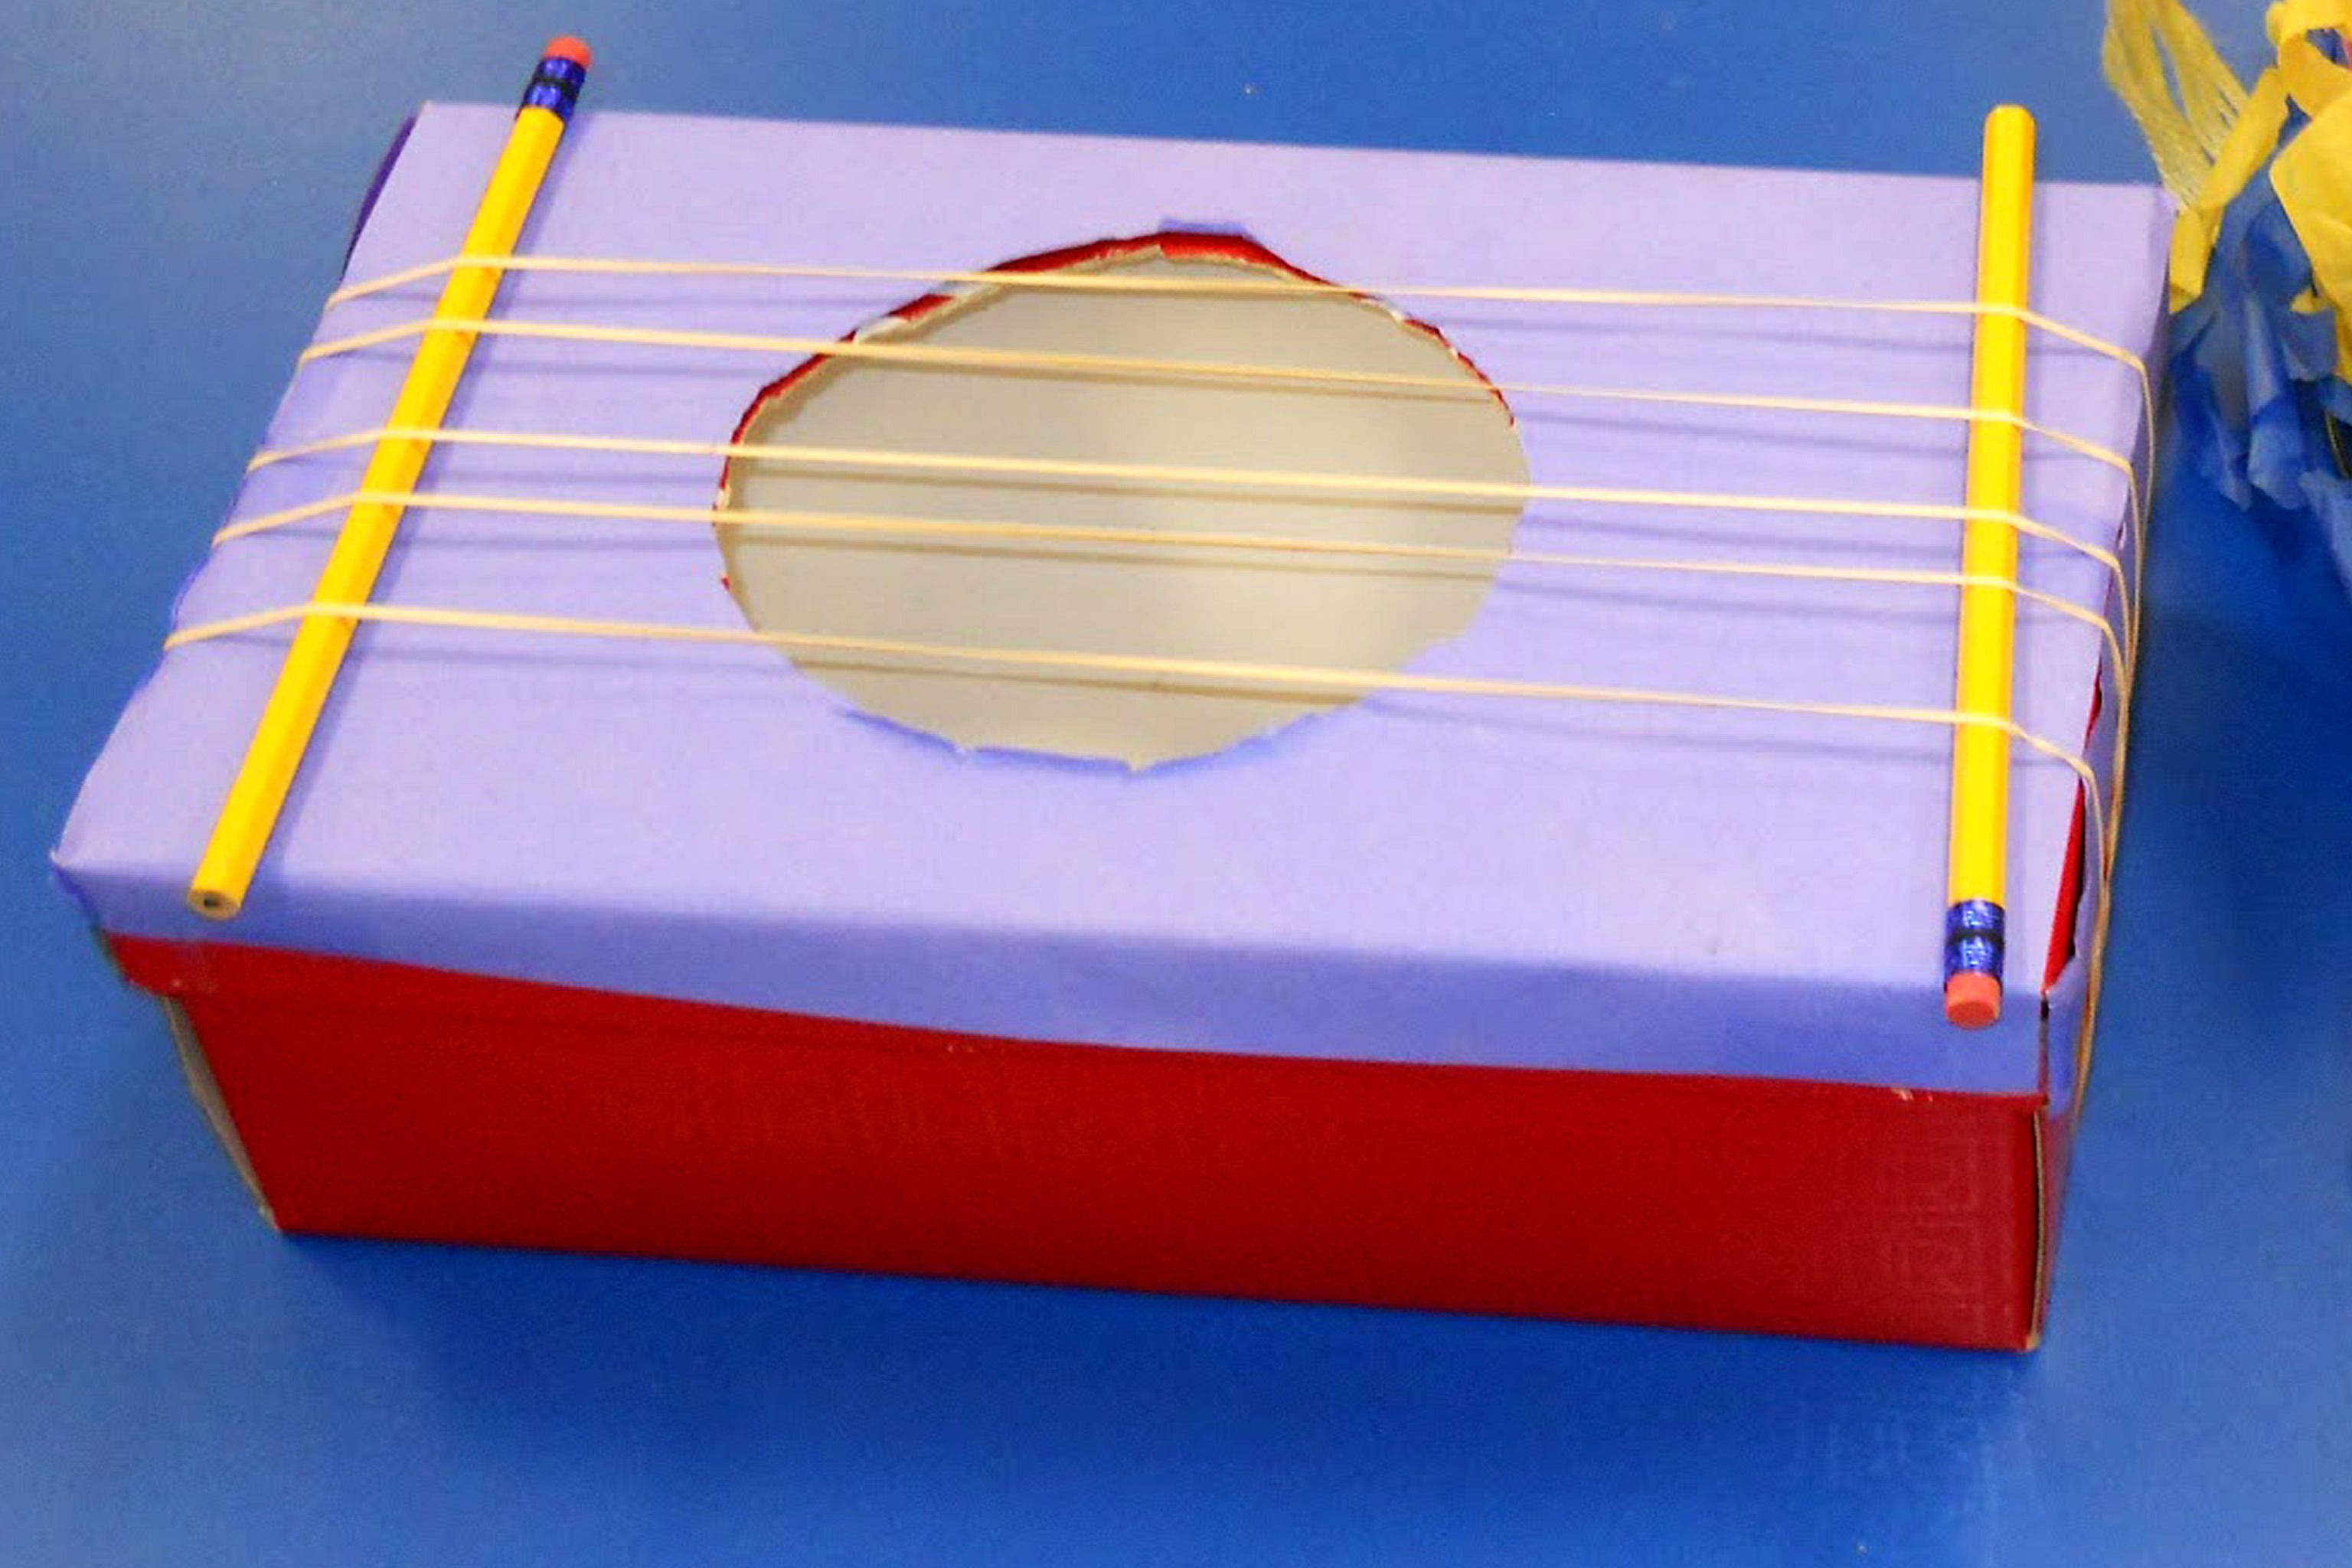 Pin On Homemade Musical Instruments